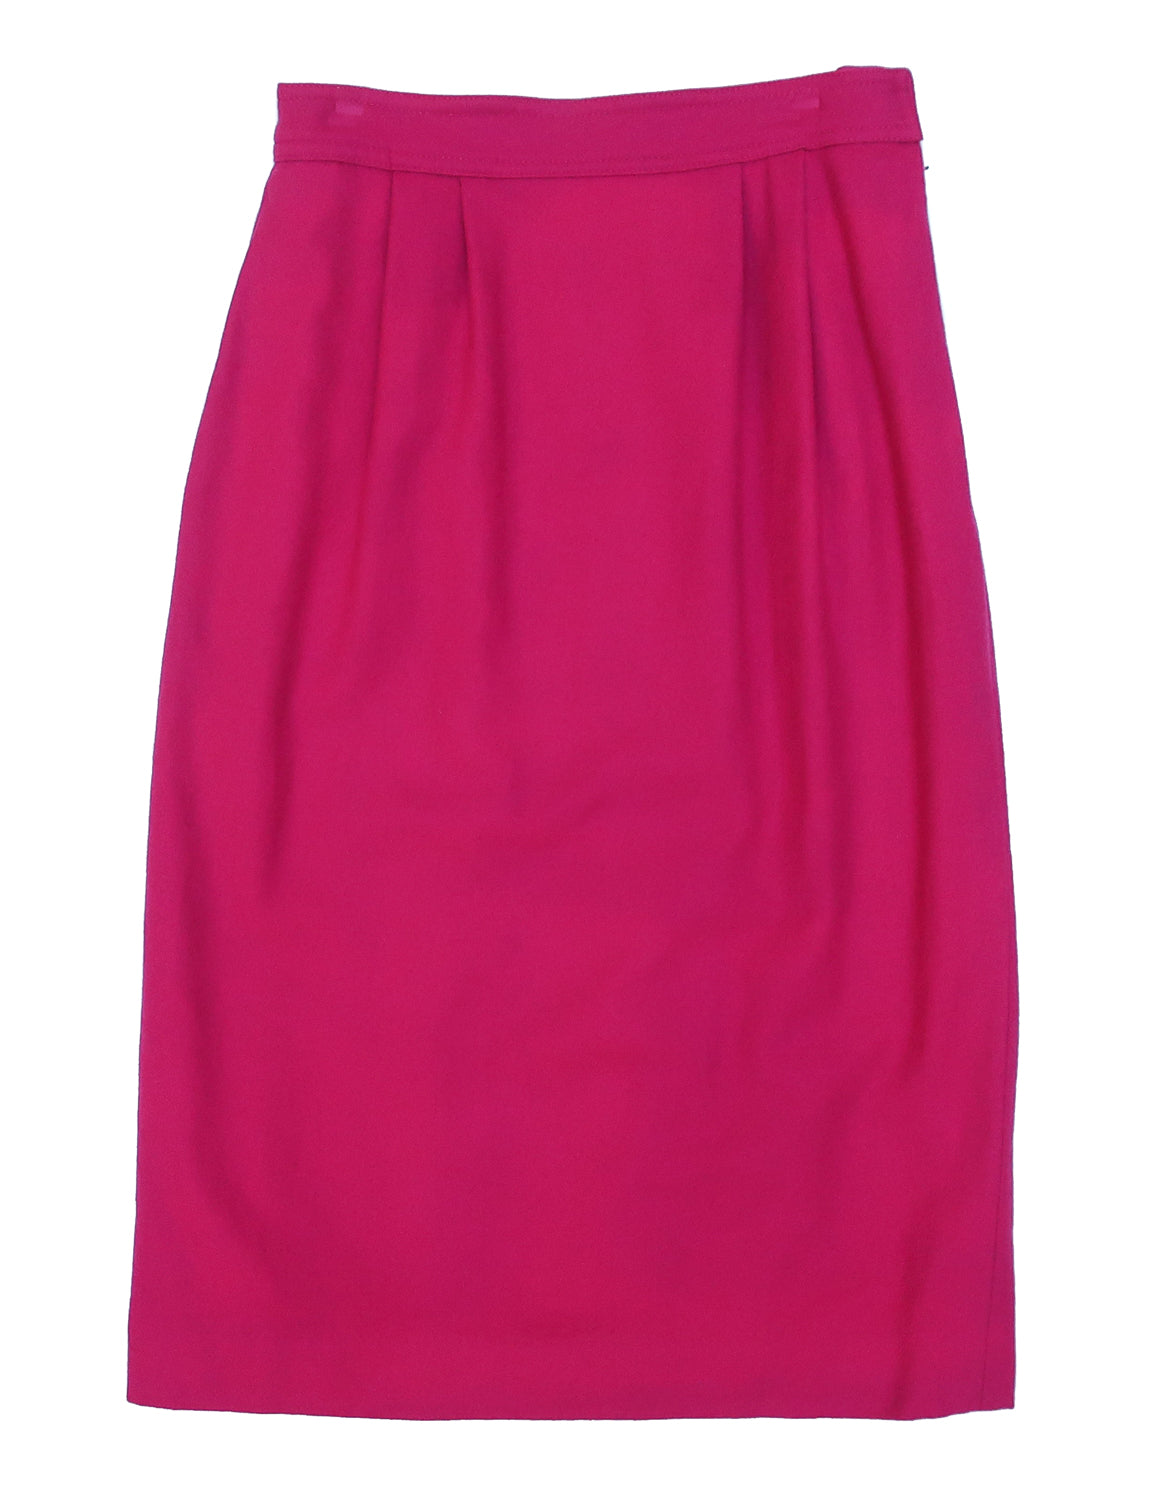 "Second Room Vintage Clothing. Vintage bright pink high waisted wool skirt, above the knee, fully lined, with pleats in front, pockets, size zipper and hook closure, with a 10"" slit in the middle back. Free North American shipping on all orders."